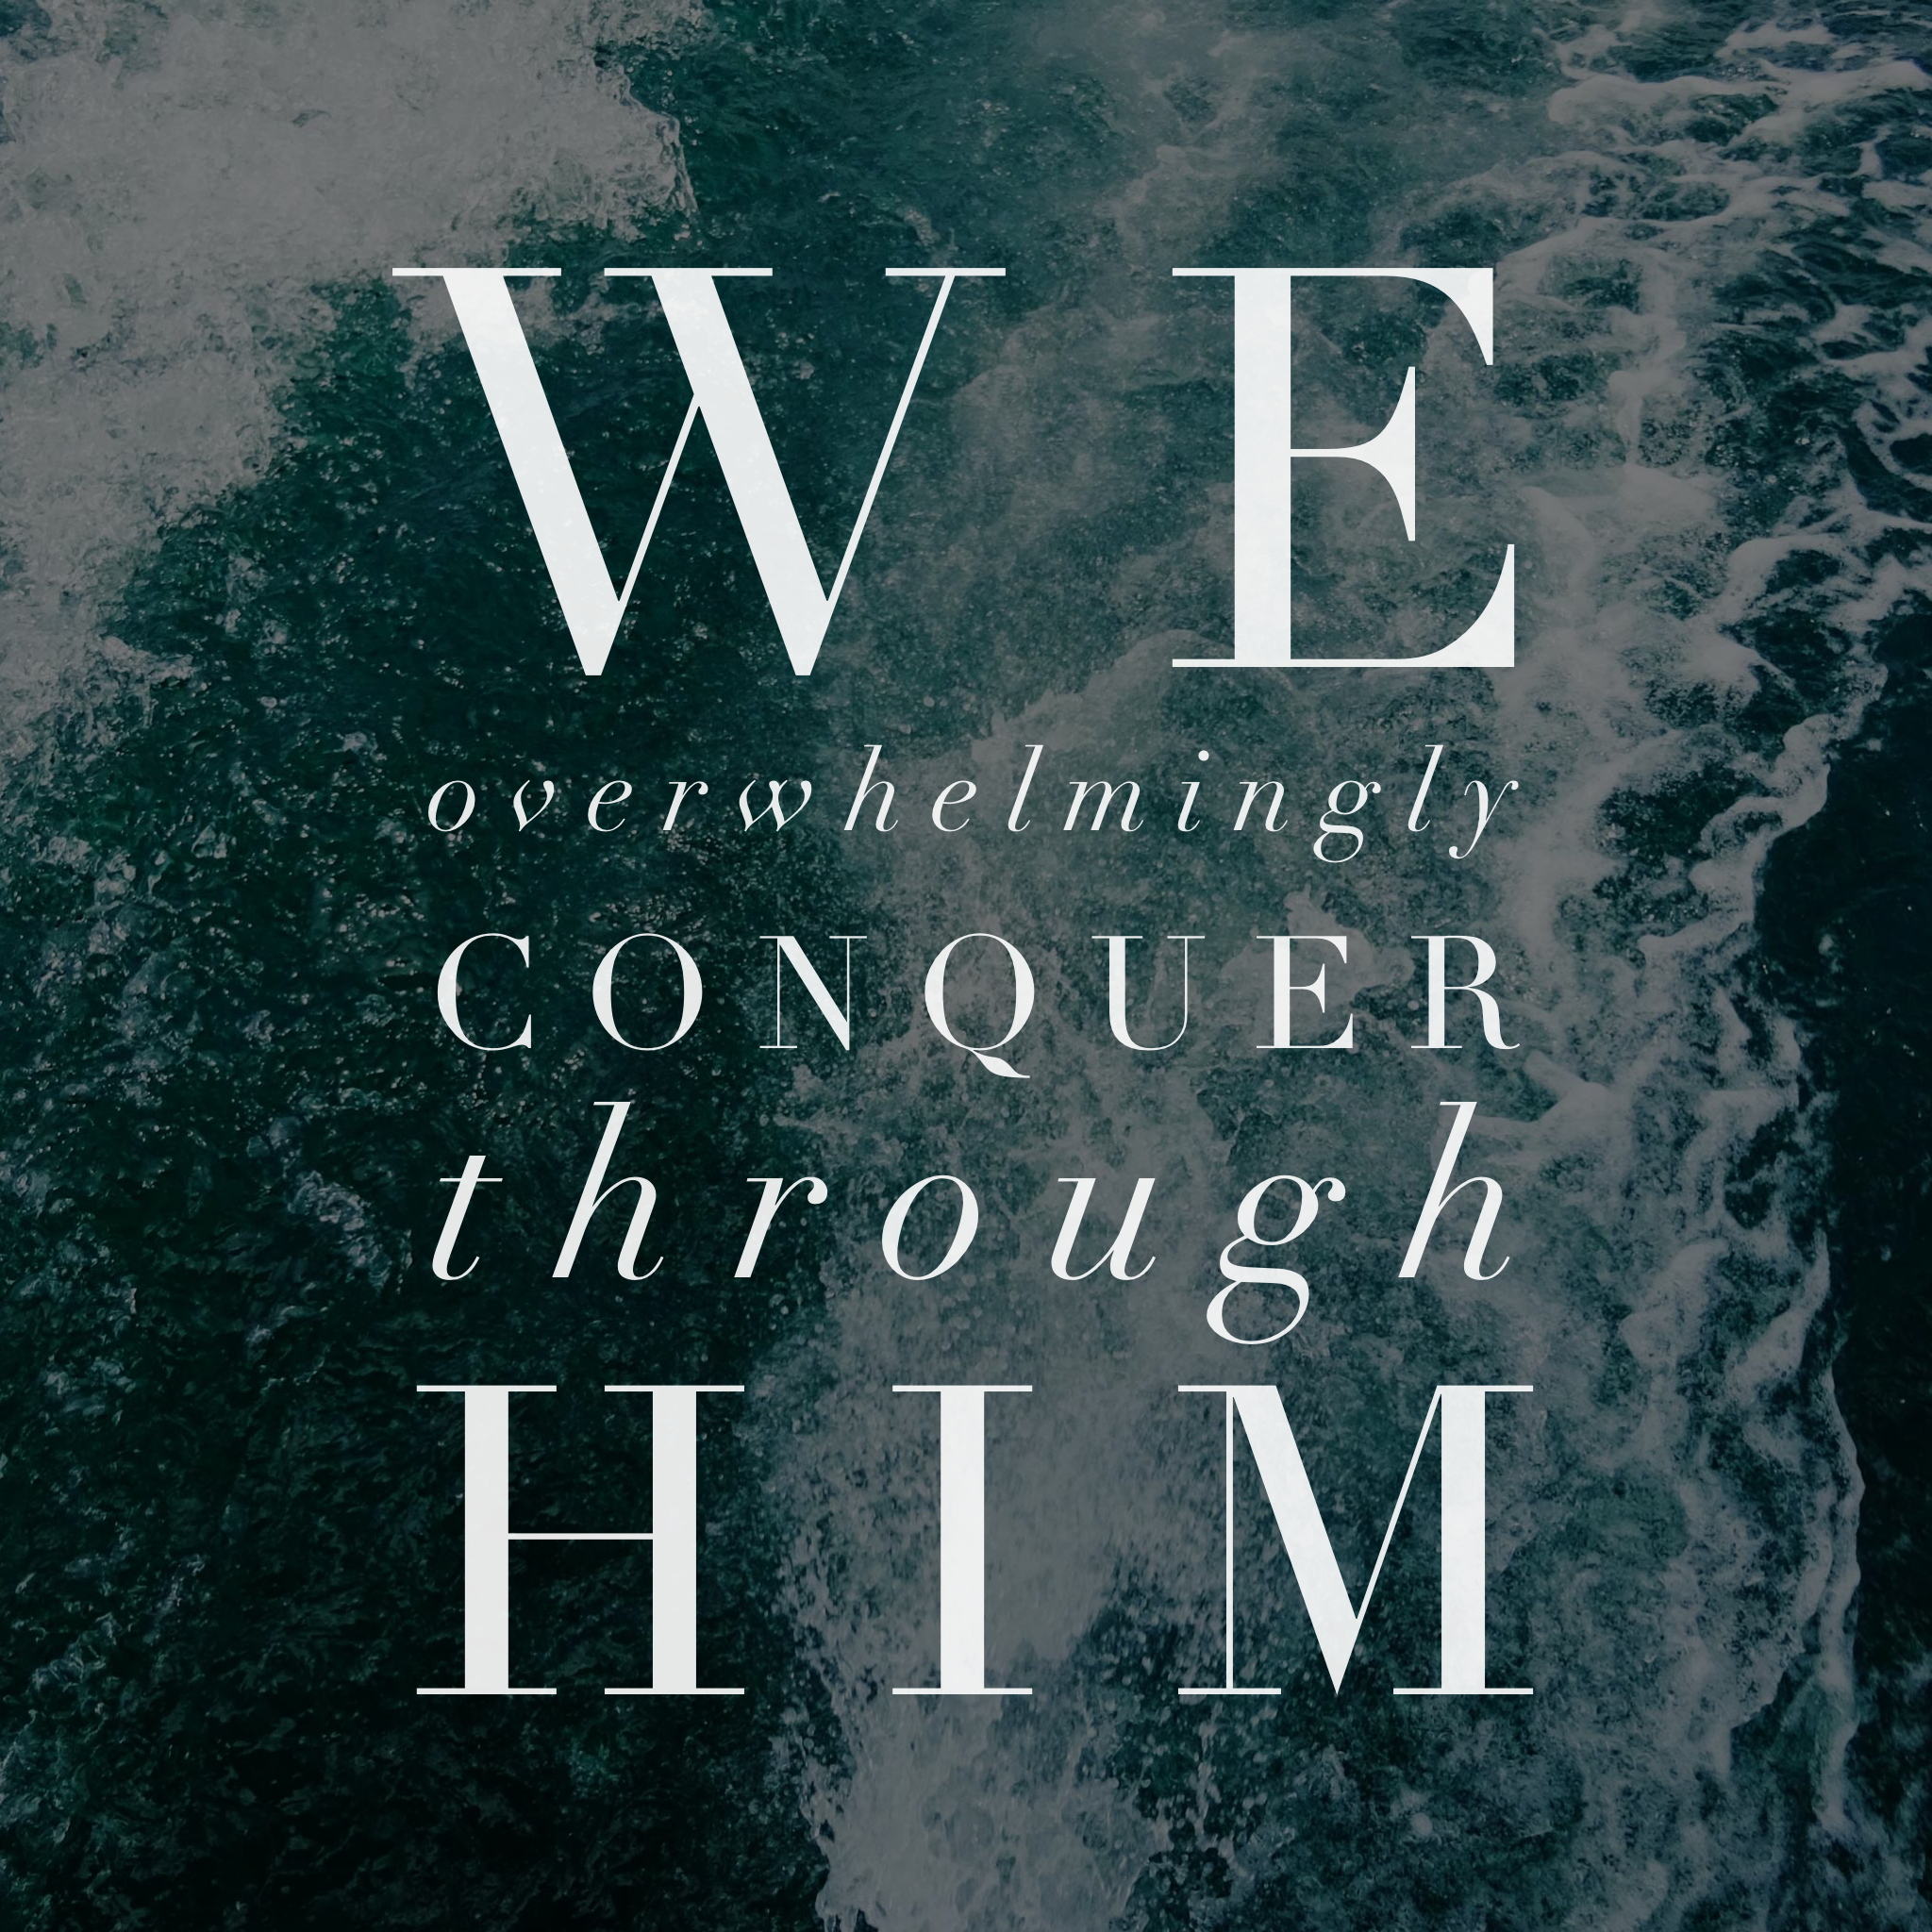 Through many anxious days it has reassured me of God's goodness and sovereignty - two attributes which remind me that nothing happens outside of His knowledge and control, and that everything happens for a good and beneficial purpose. Romans 8